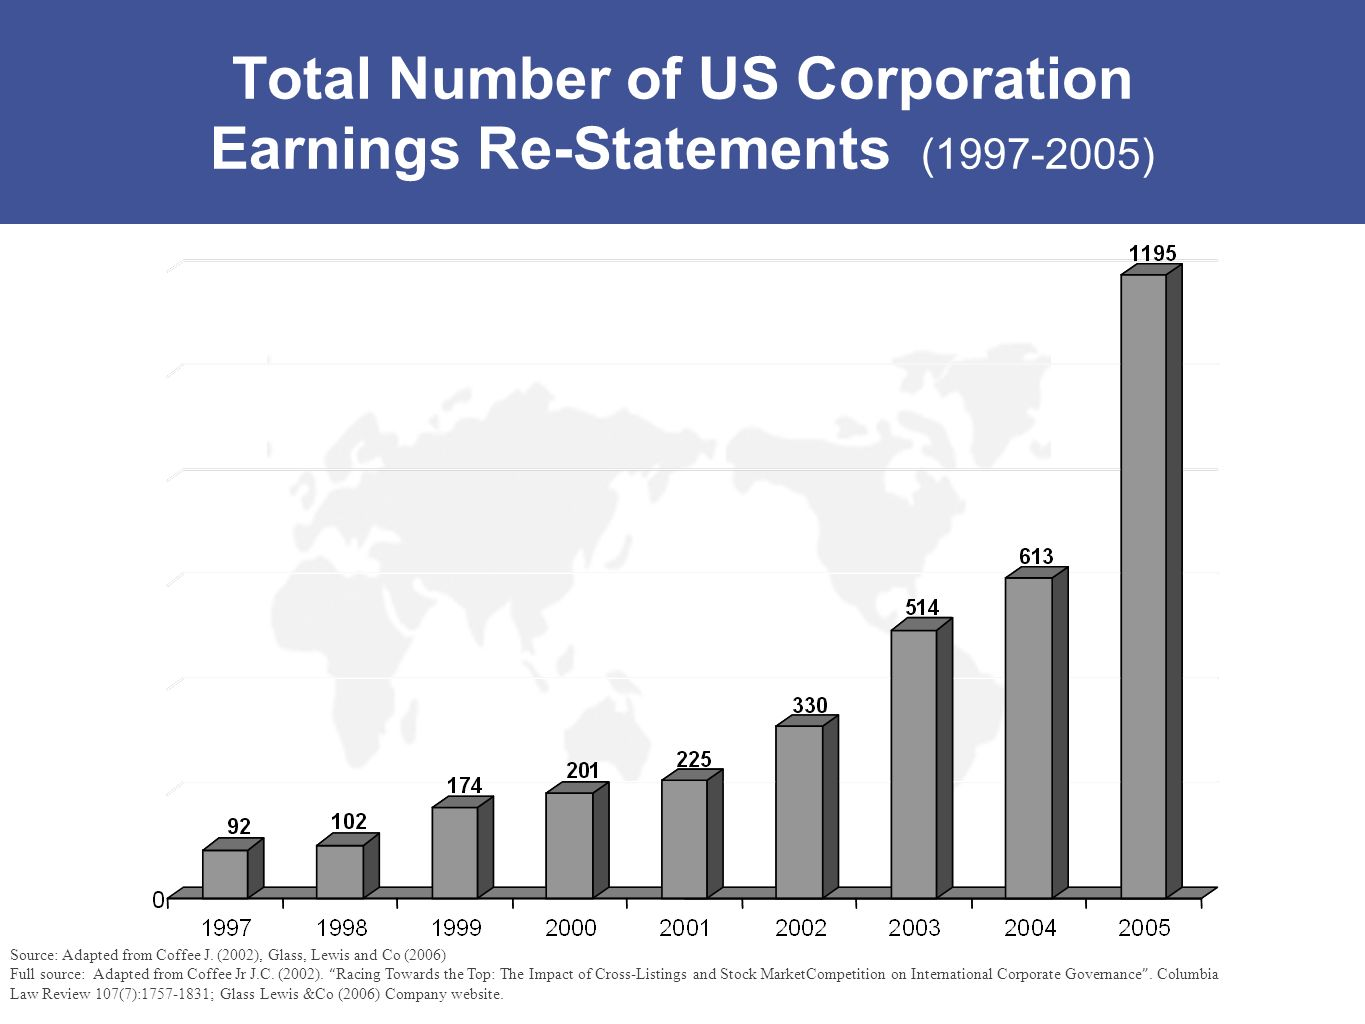 Total Number of US Corporation Earnings Re-Statements (1997-2005)